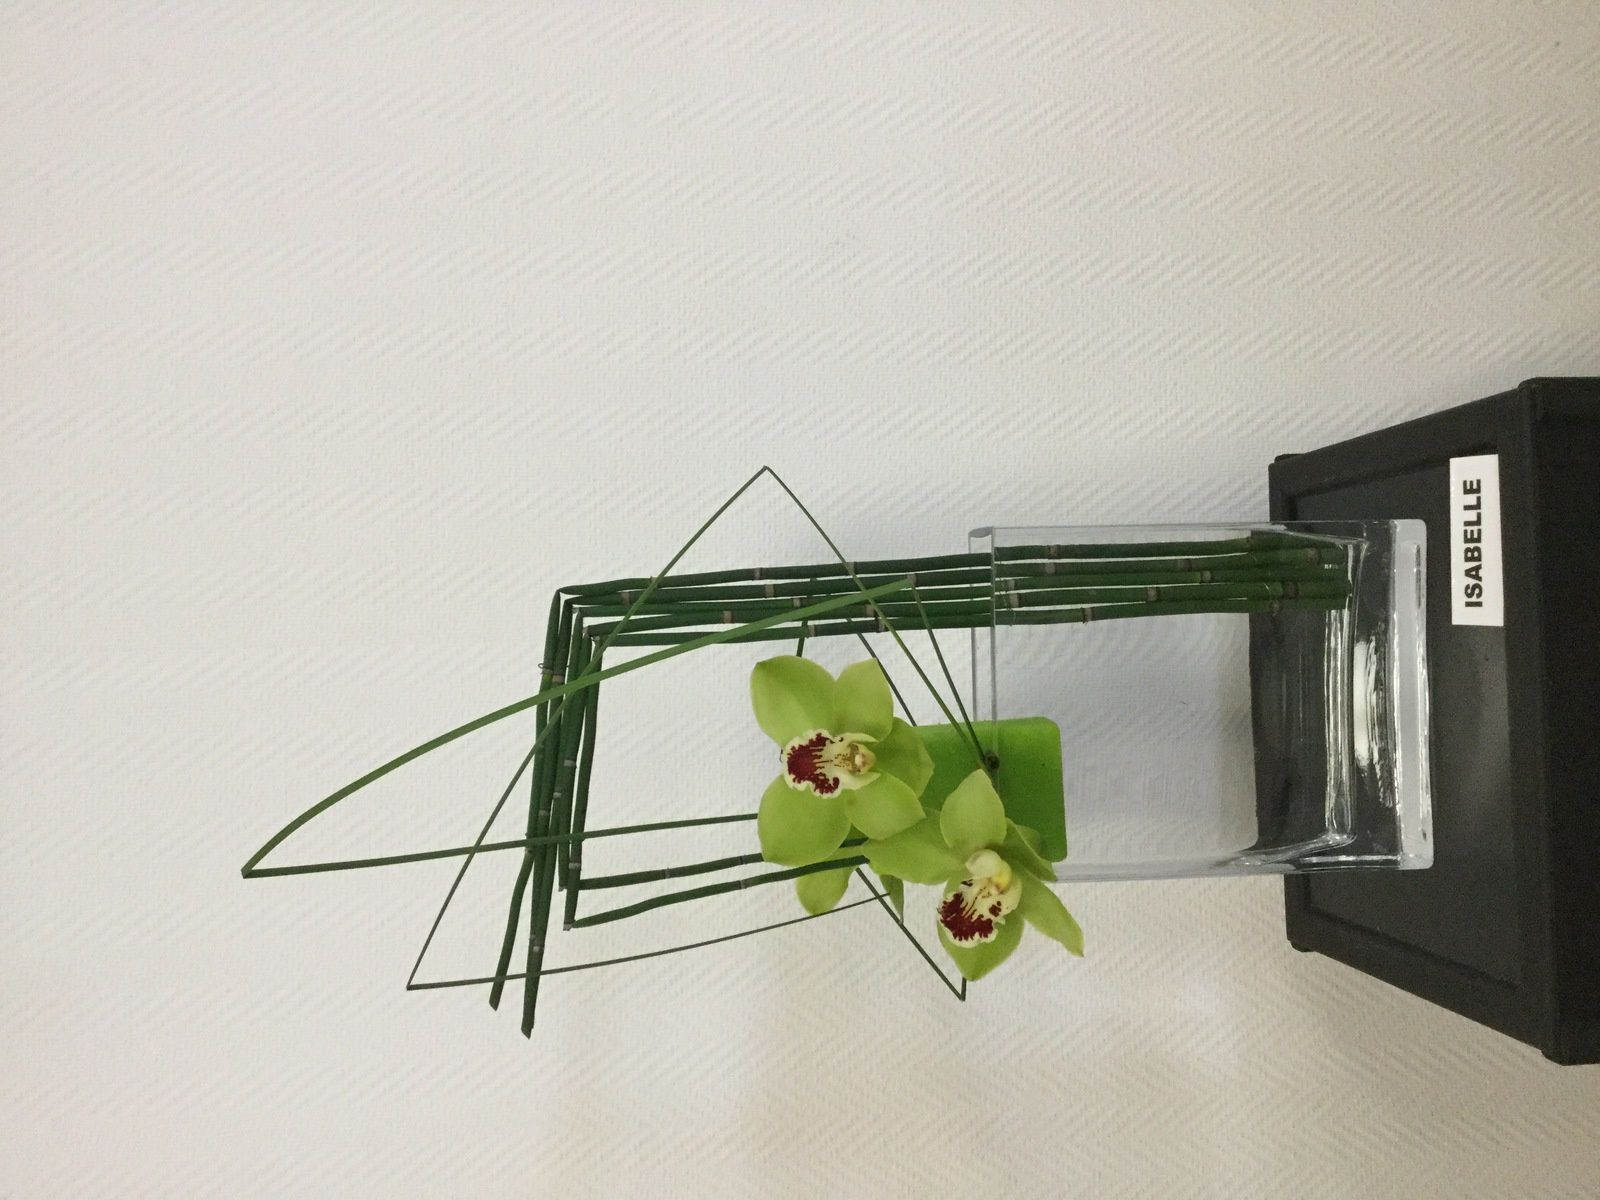 Prêles, Steel-grass, Galax, Cymbidium, mousse de couleur